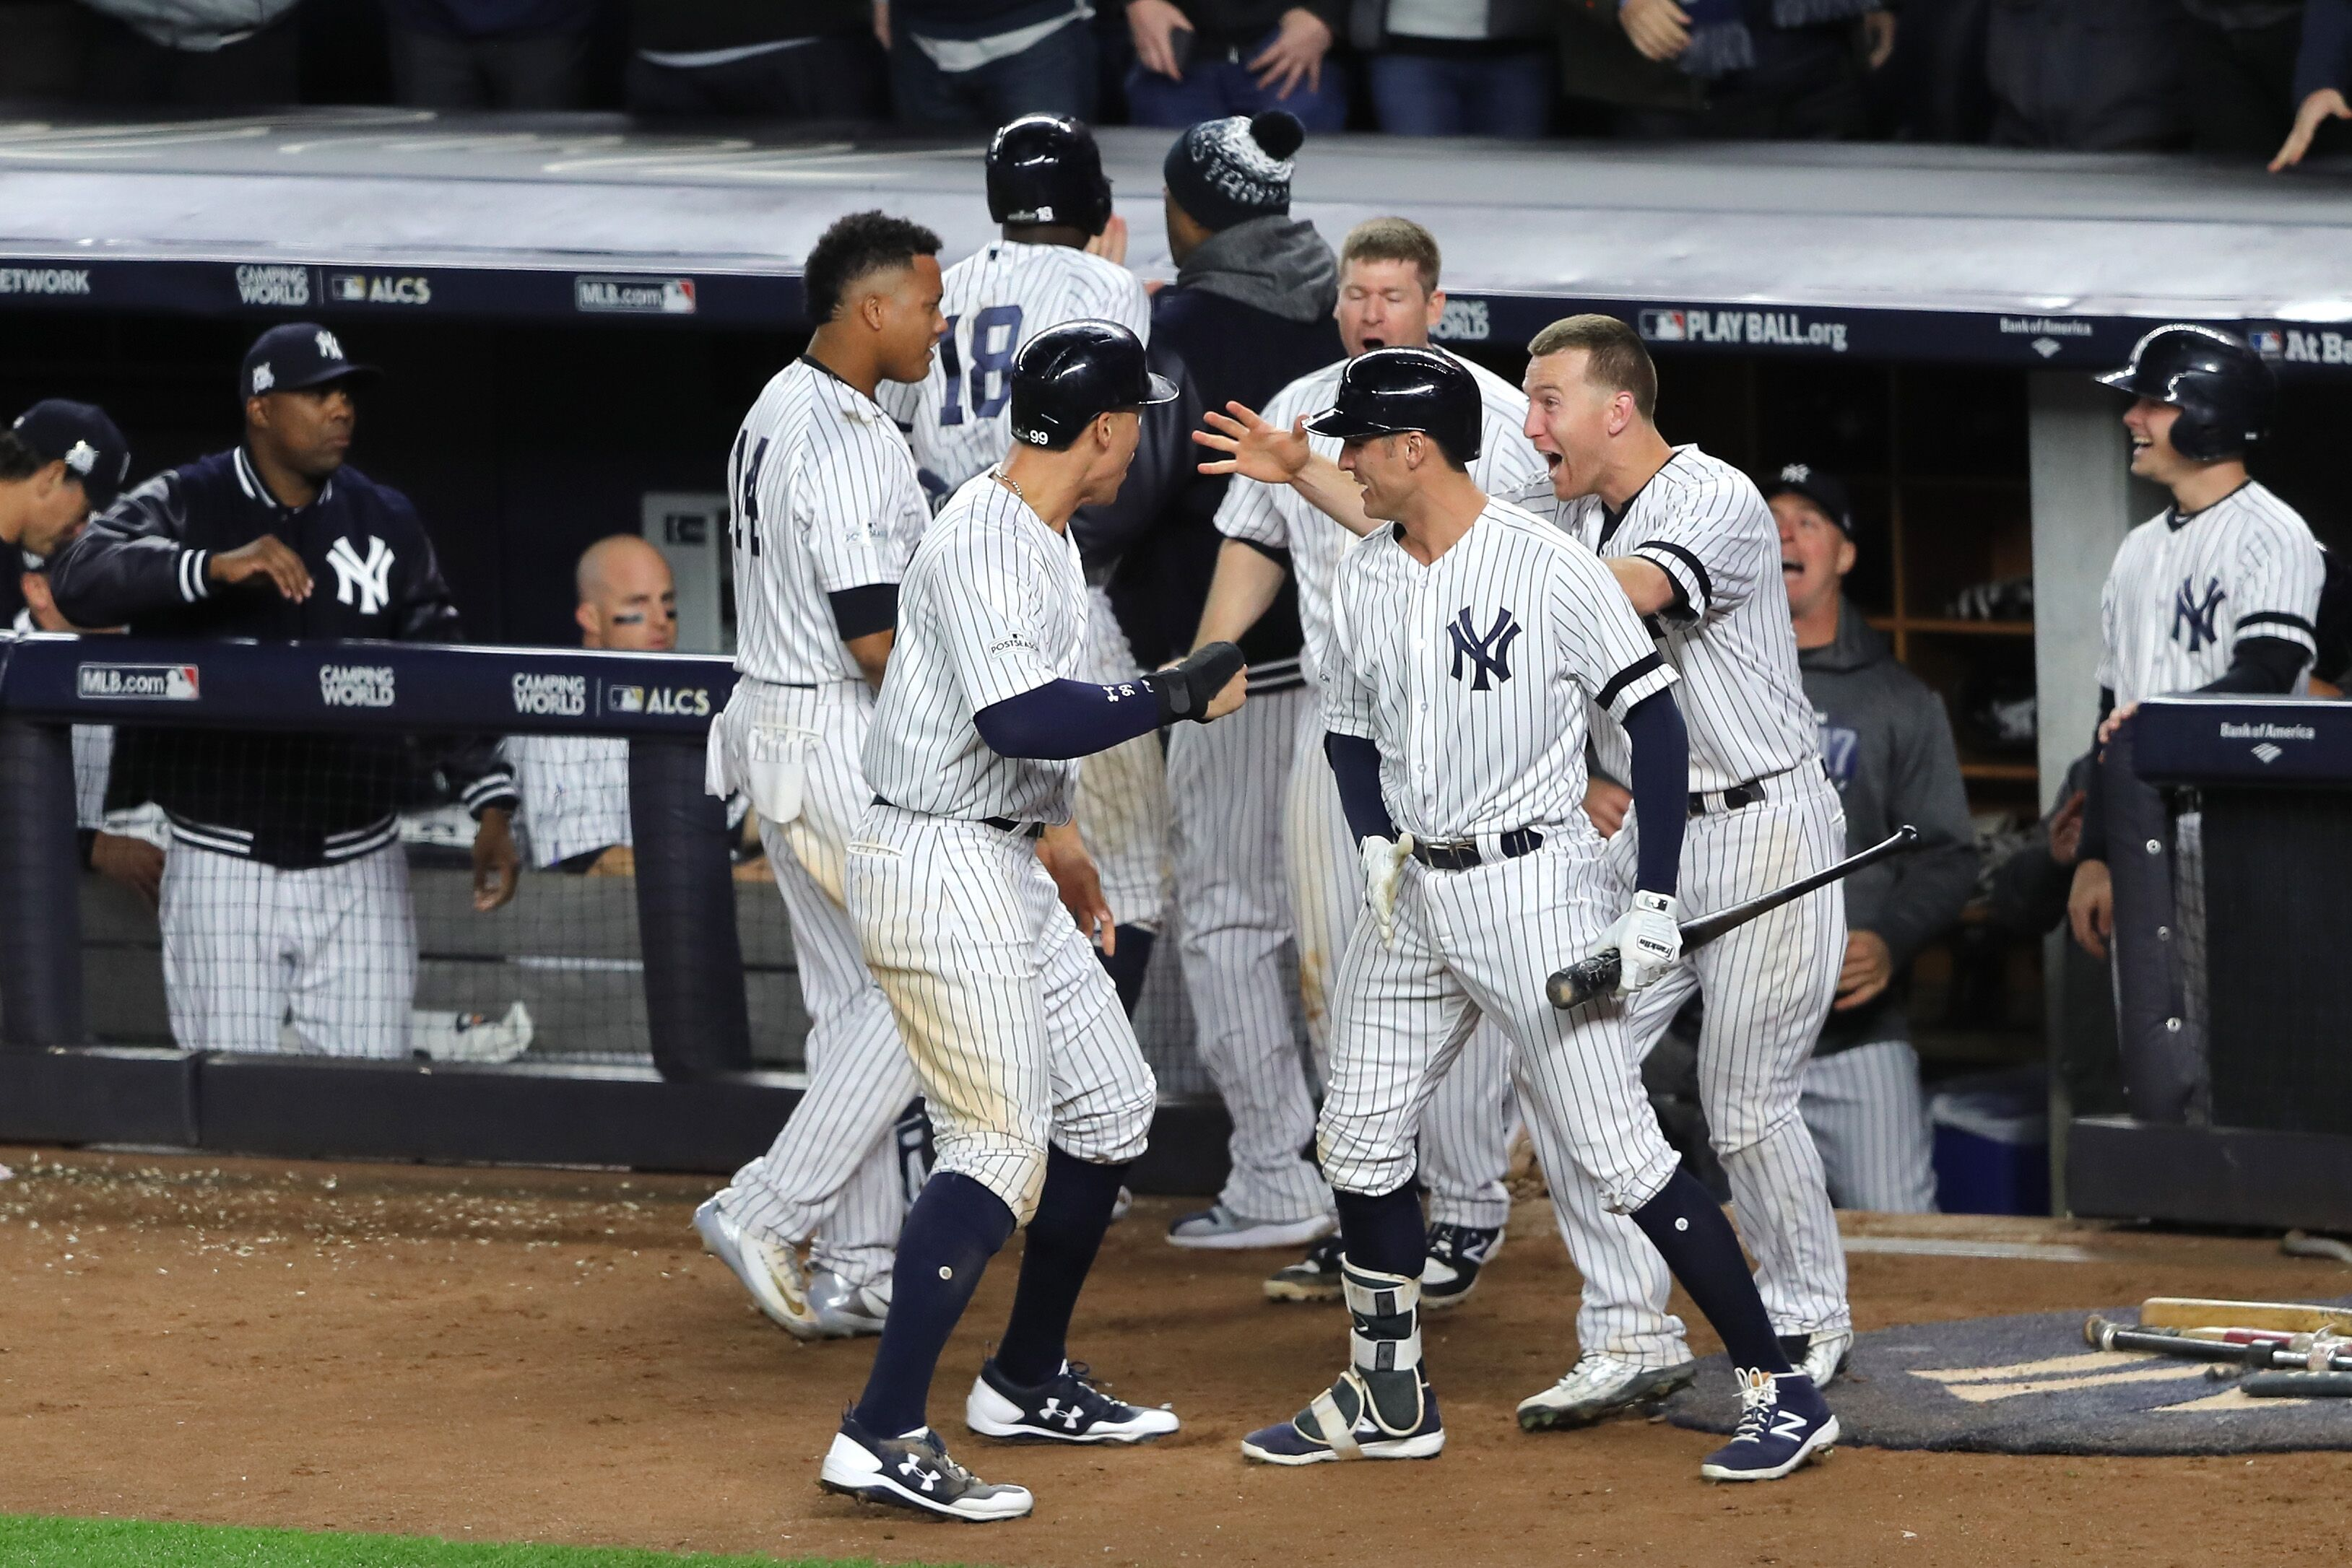 862559596-league-championship-series-houston-astros-v-new-york-yankees-game-four.jpg